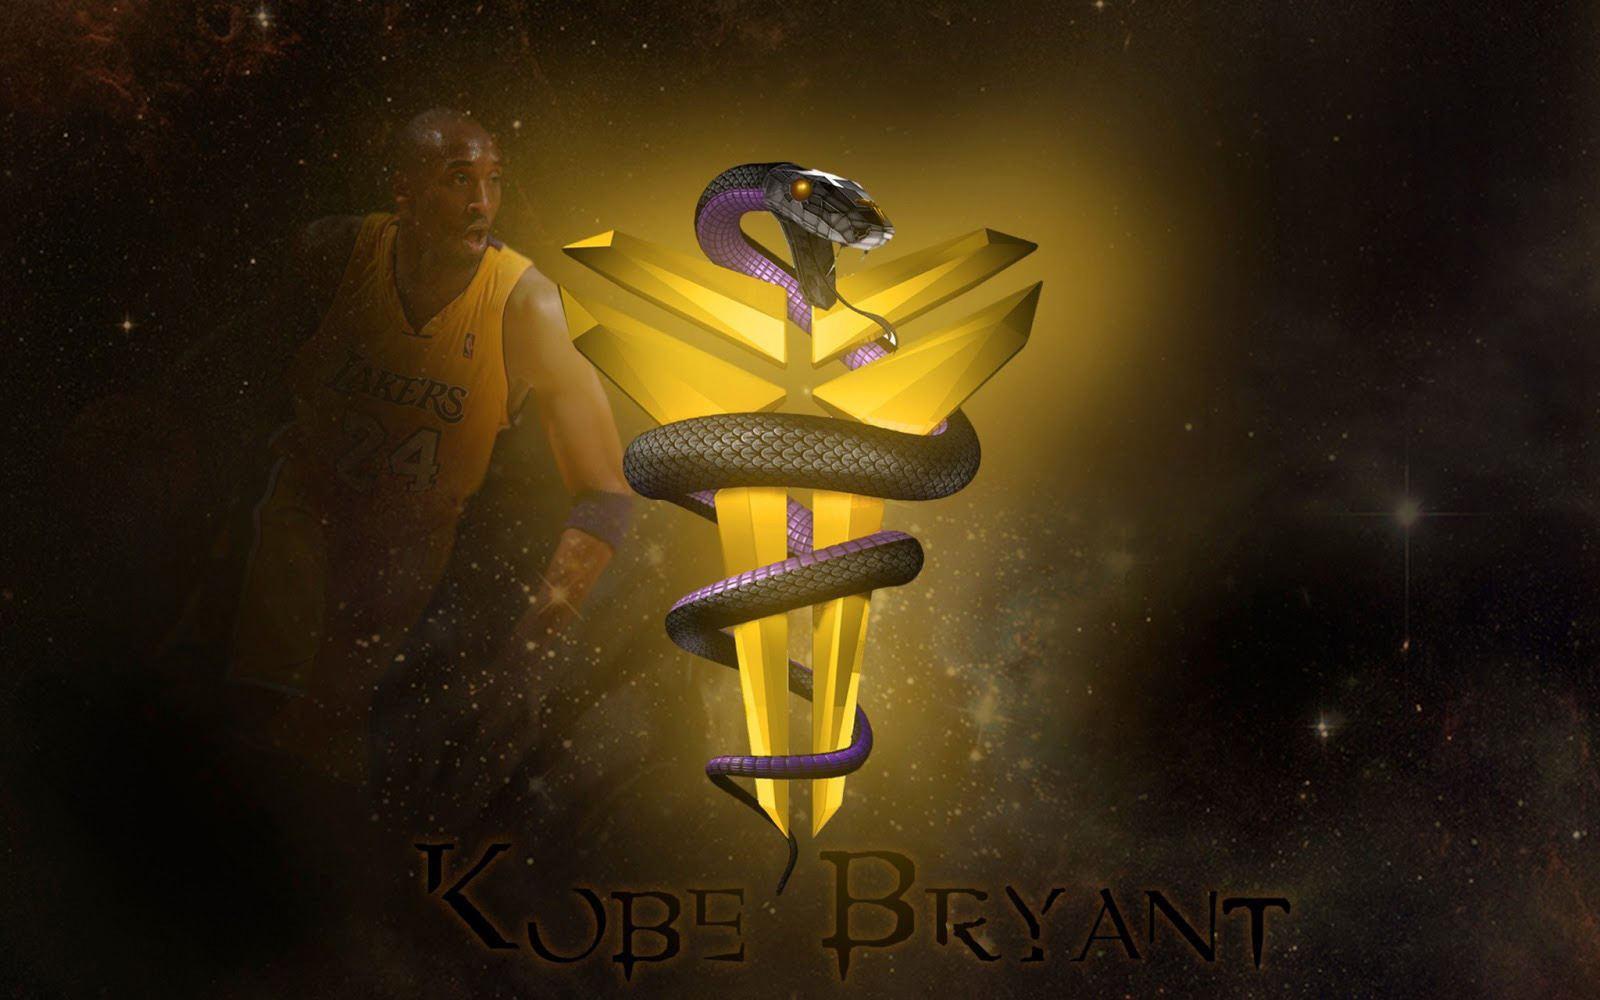 45 kobe bryant wallpapers hd download